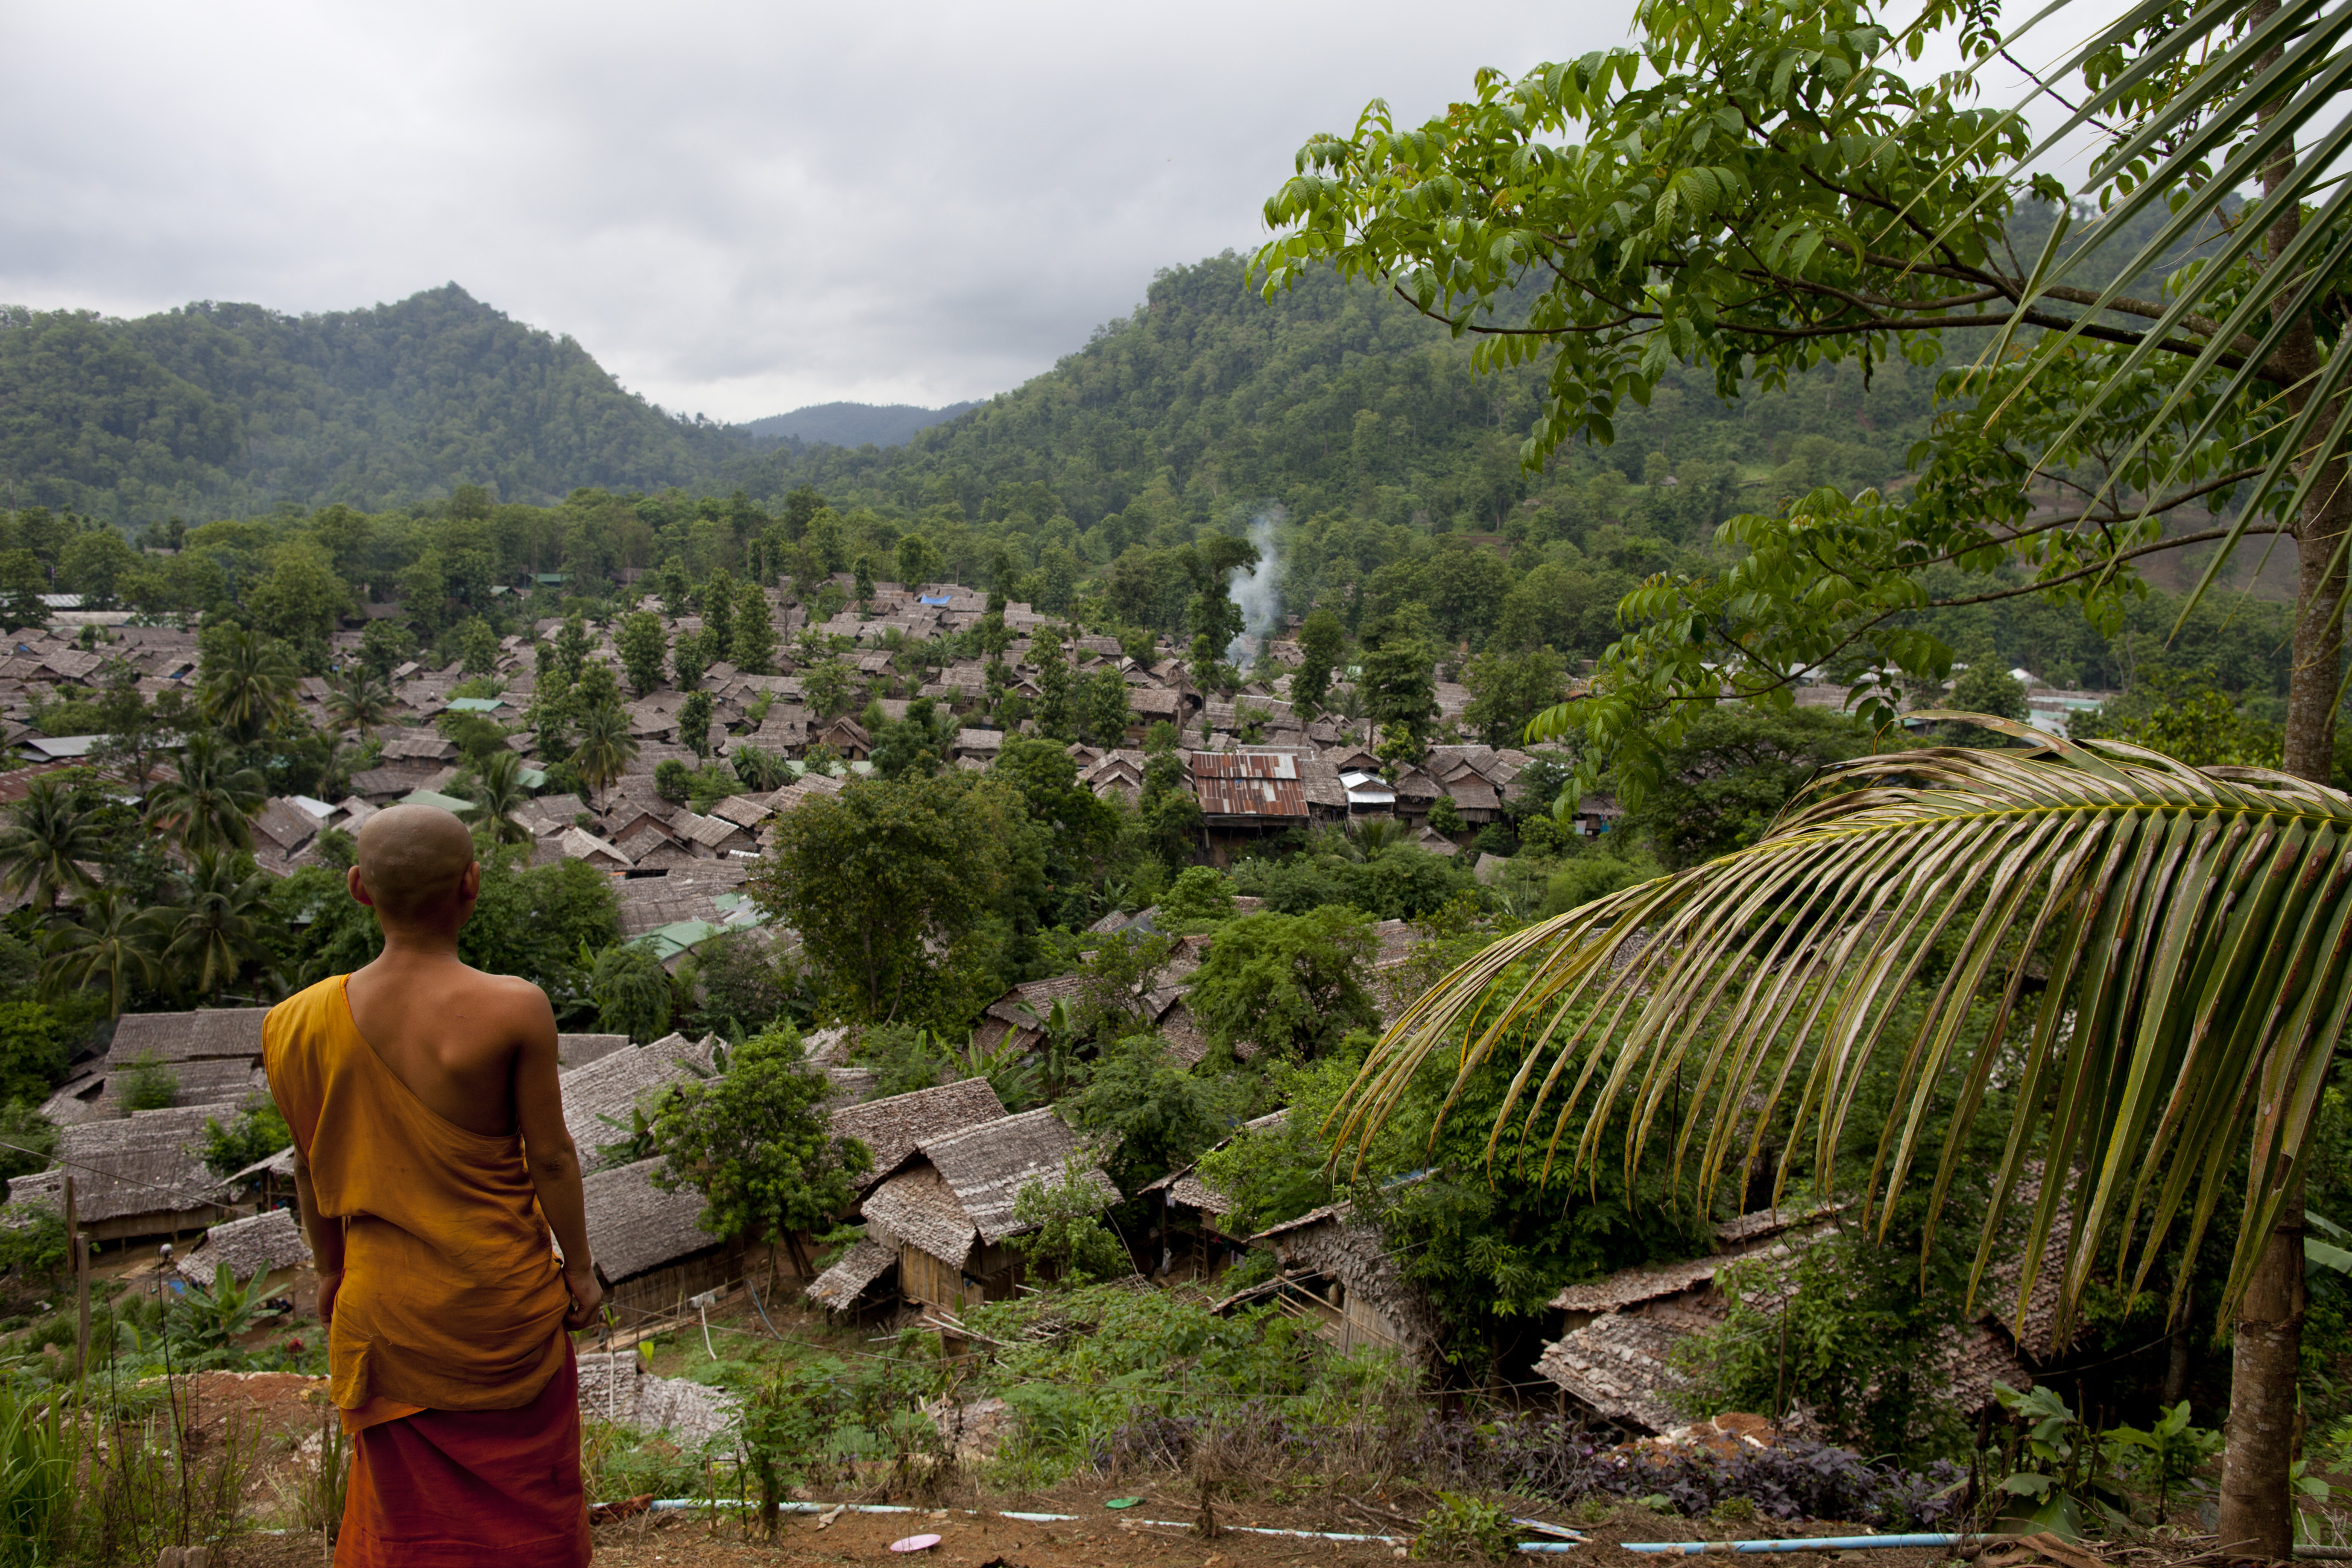 A Burmese monk looks out from a viewpoint at the Mae La refugee camp in Tak province, Thailand, on June 6, 2012